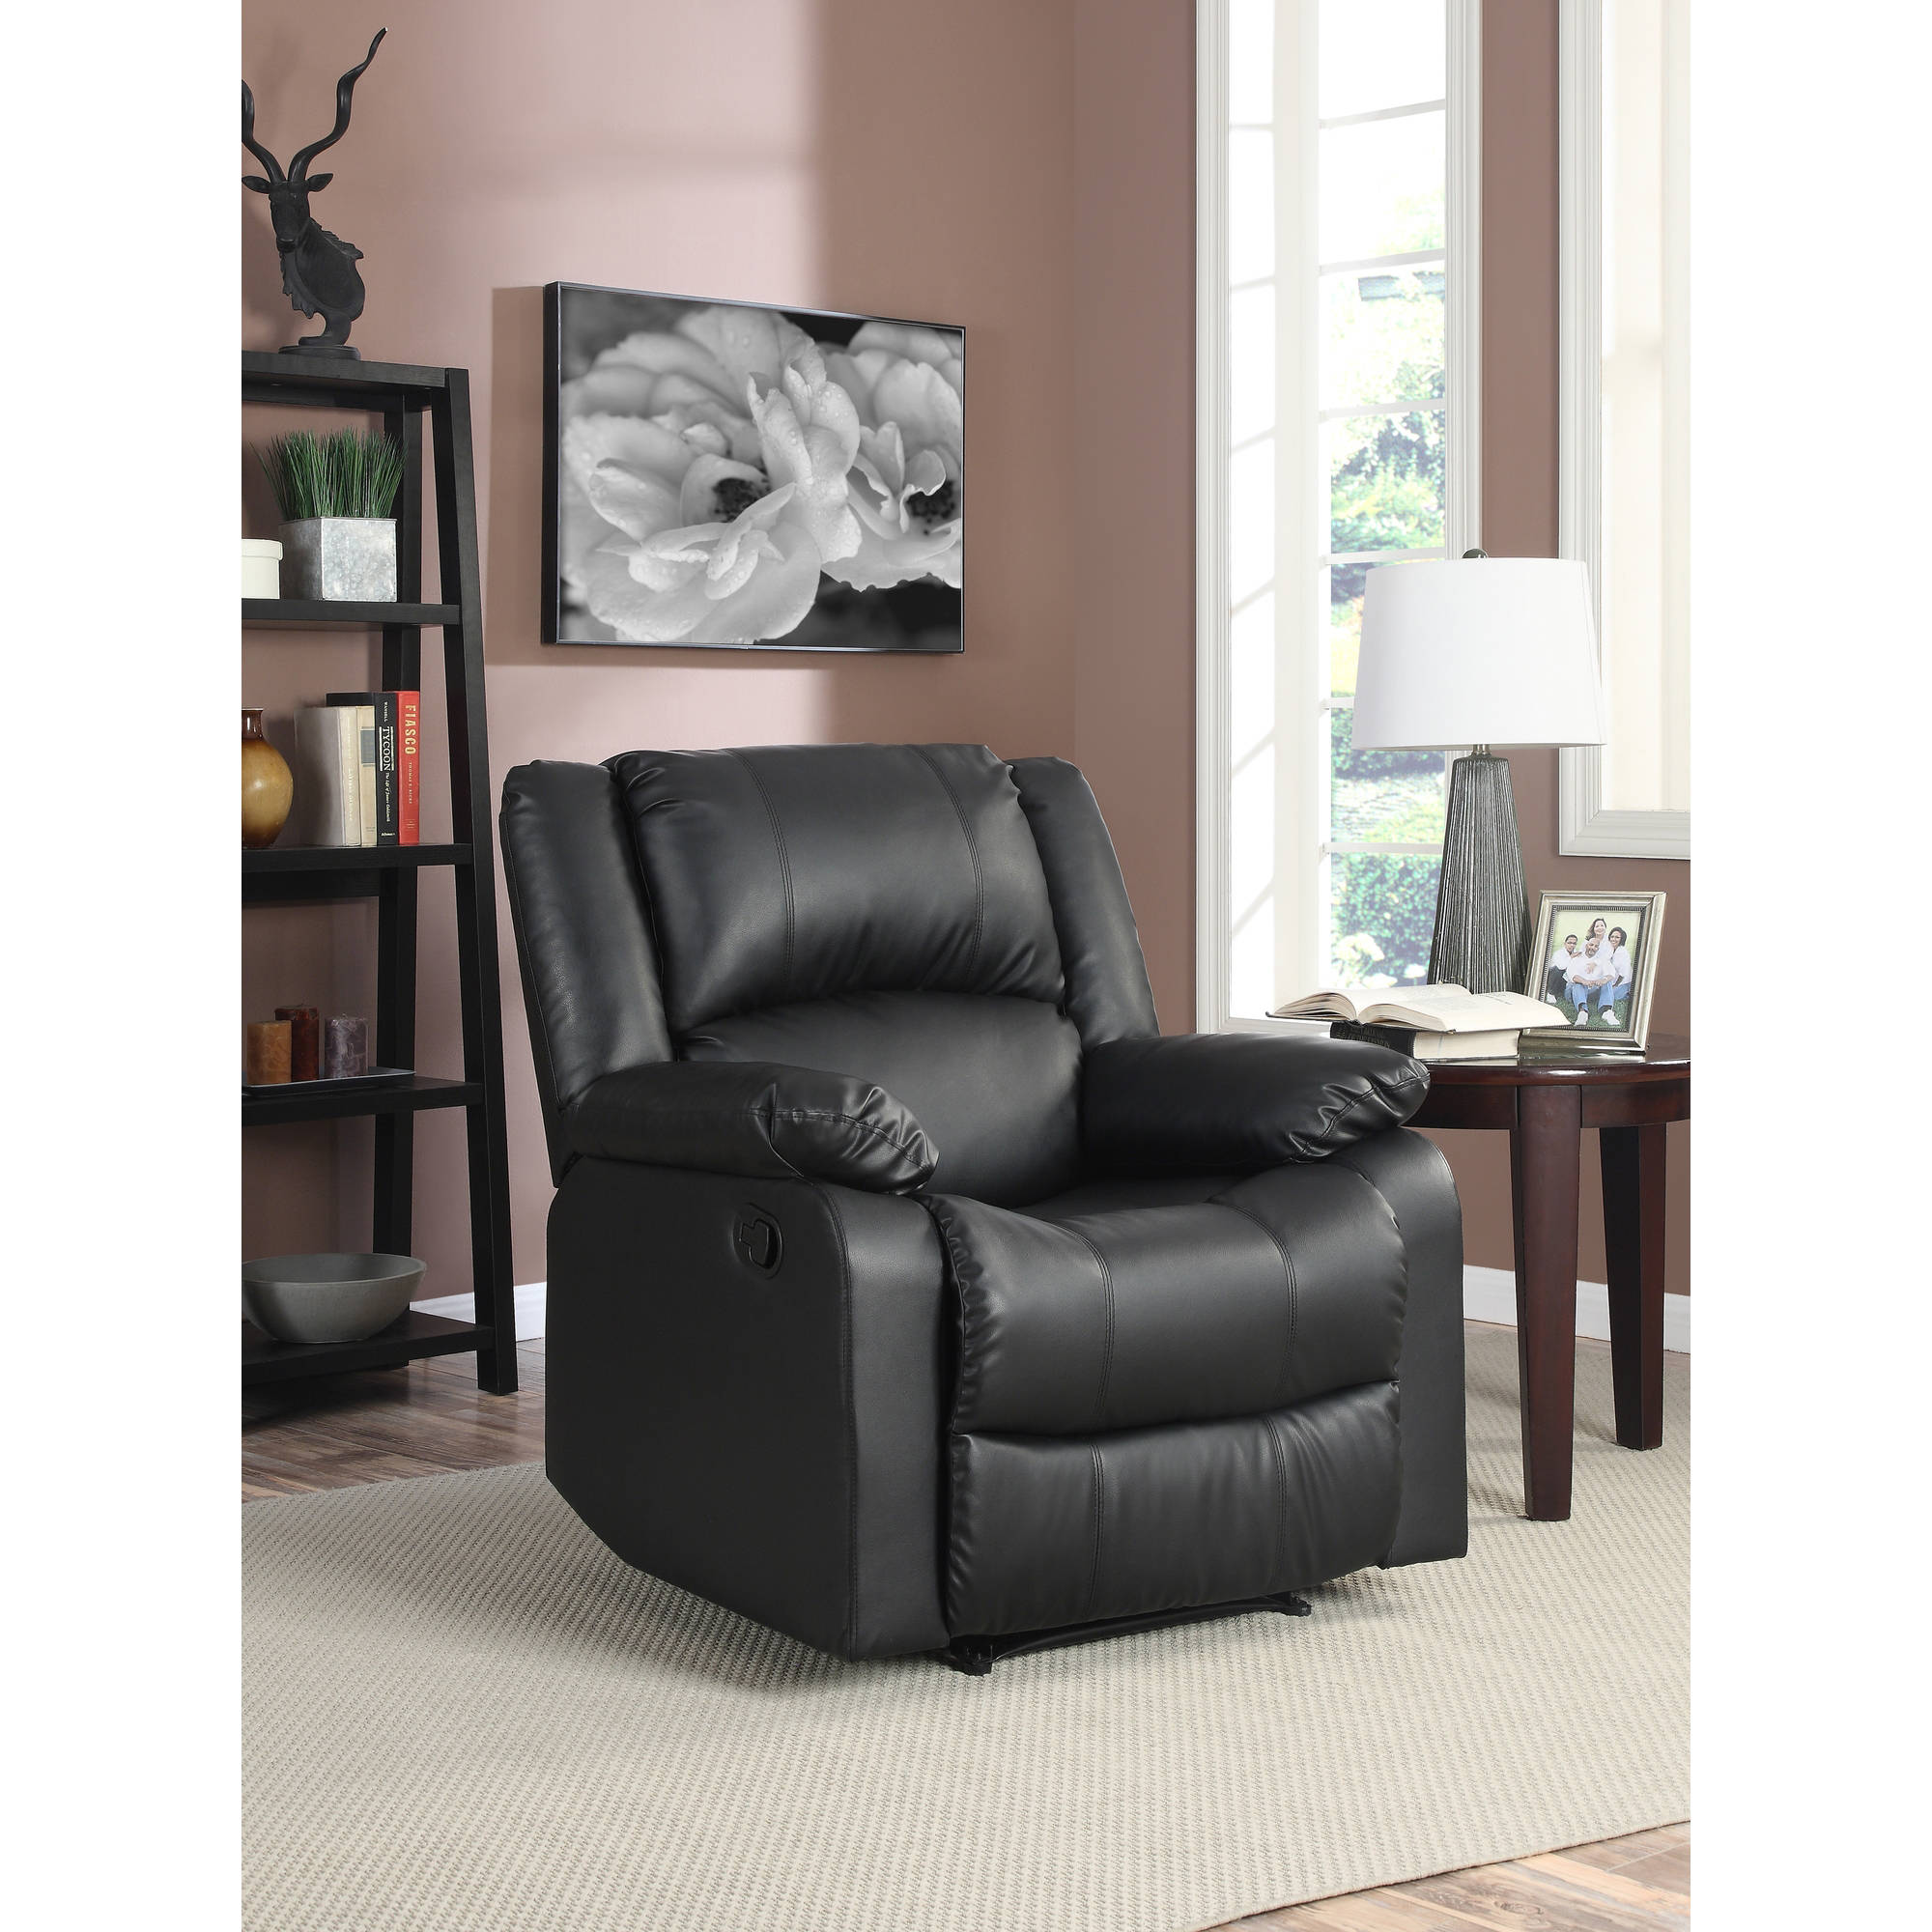 Serta Warren Recliner Single Chair